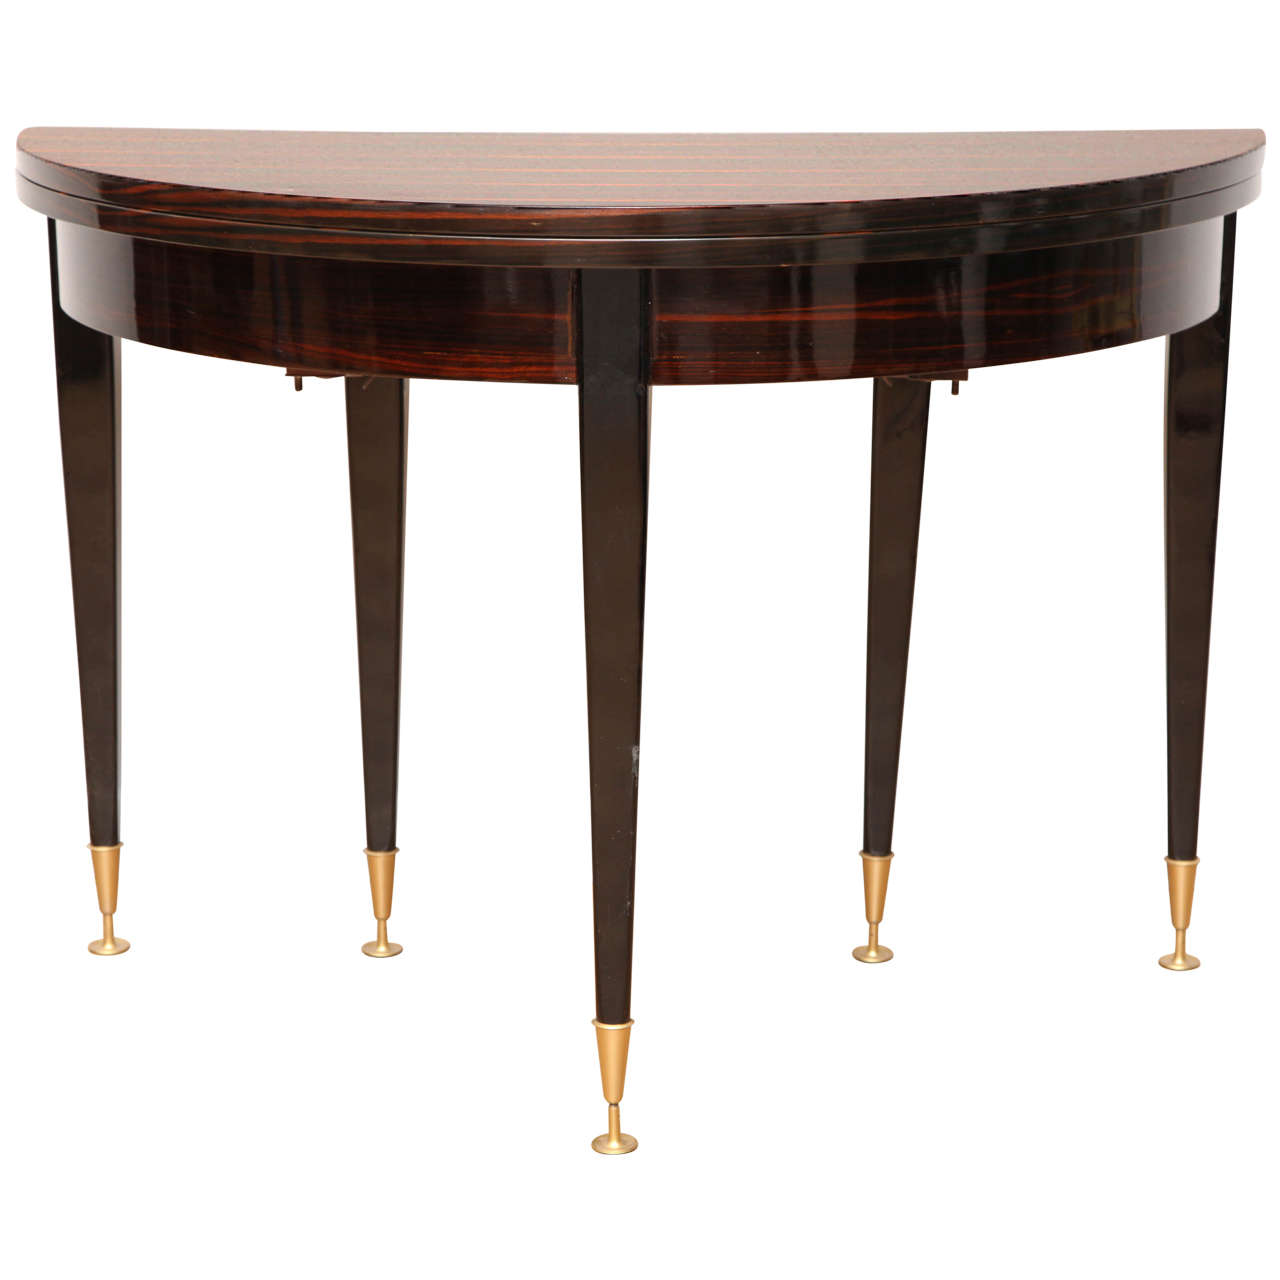 Fabulous Art Deco Round Expandable Dining Table At 1stdibs